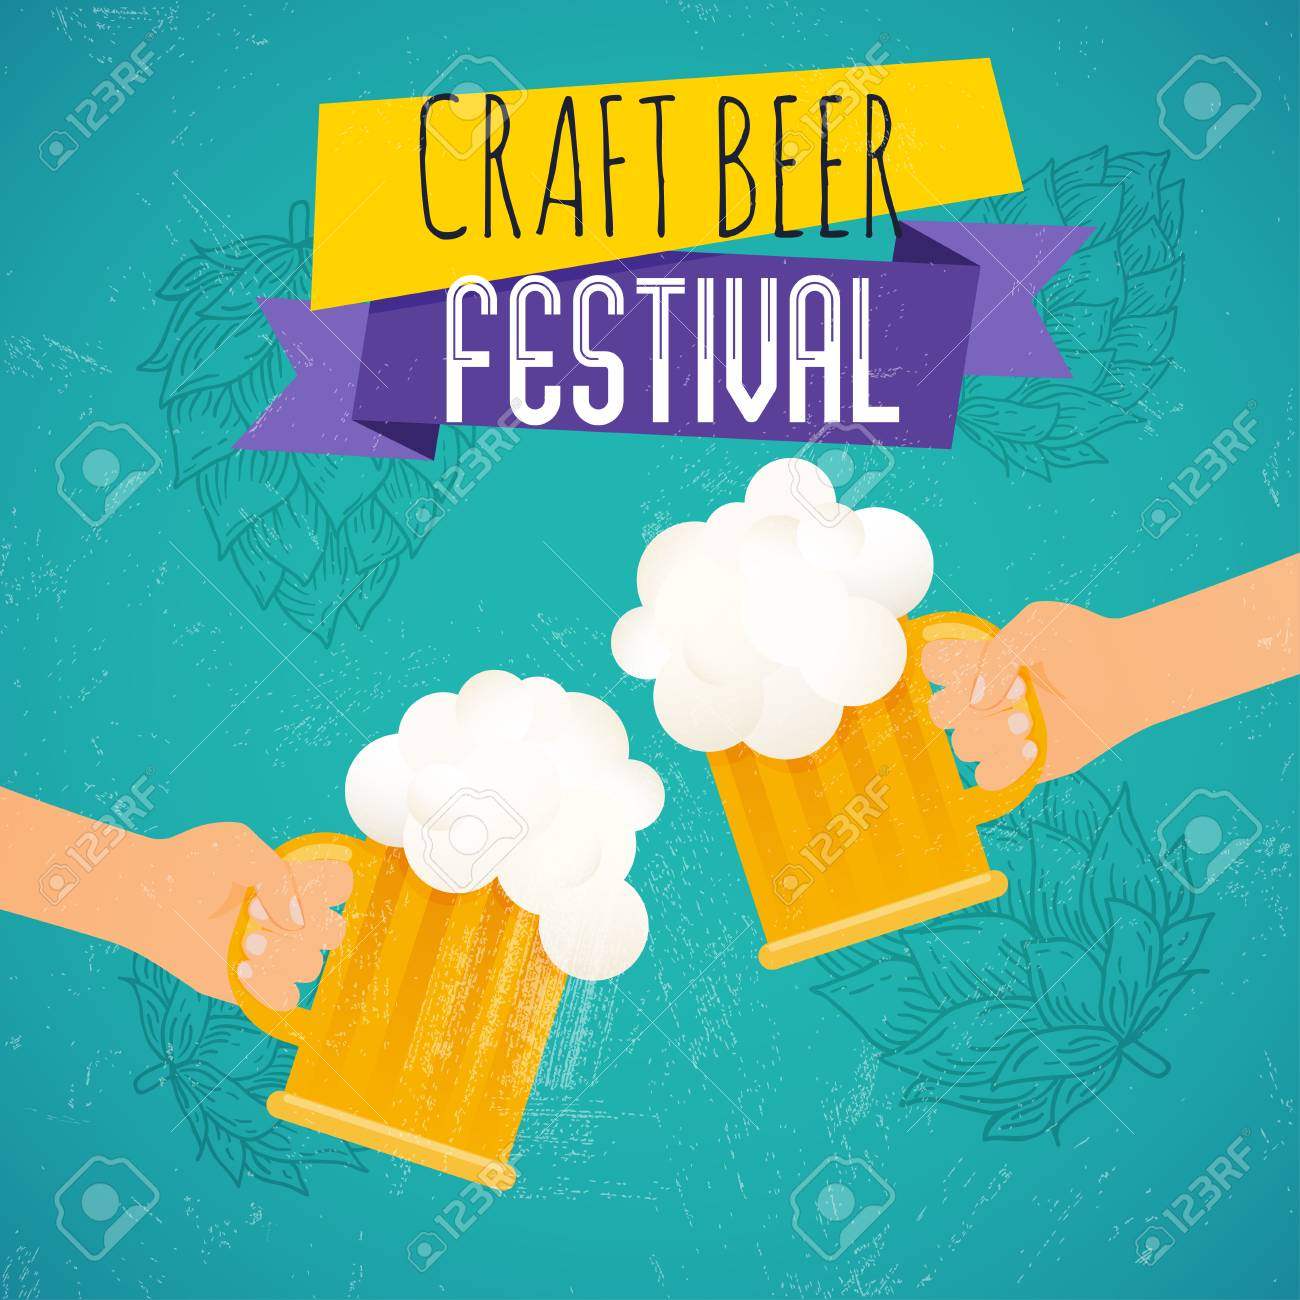 Craft Beer Festival Two Hands Holding Beer Glass Beer Festival